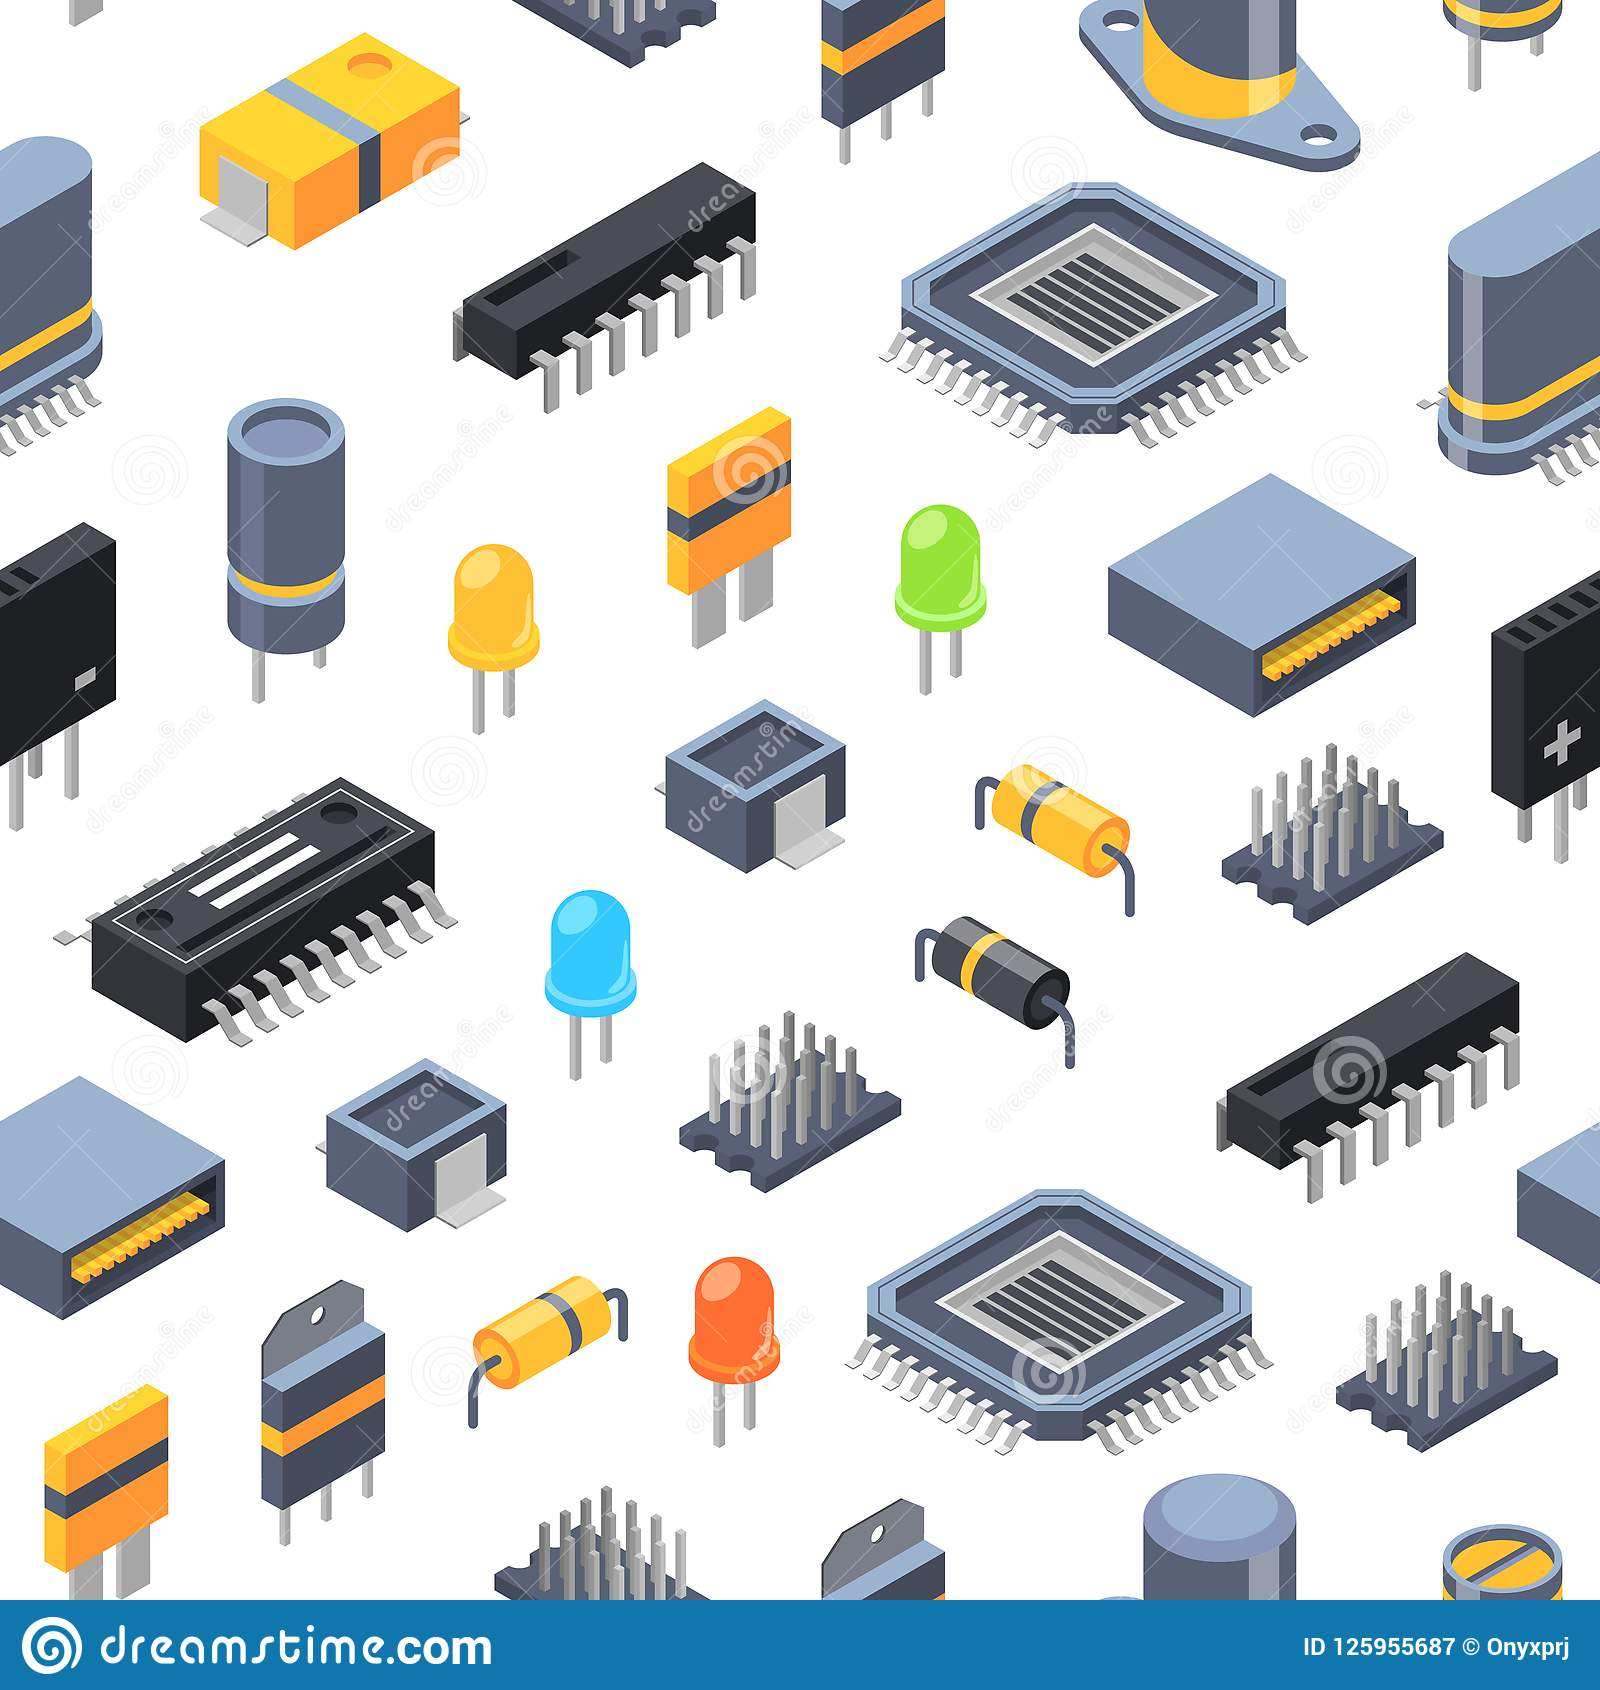 Vector isometric microchips and electronic parts icons pattern or background illustration